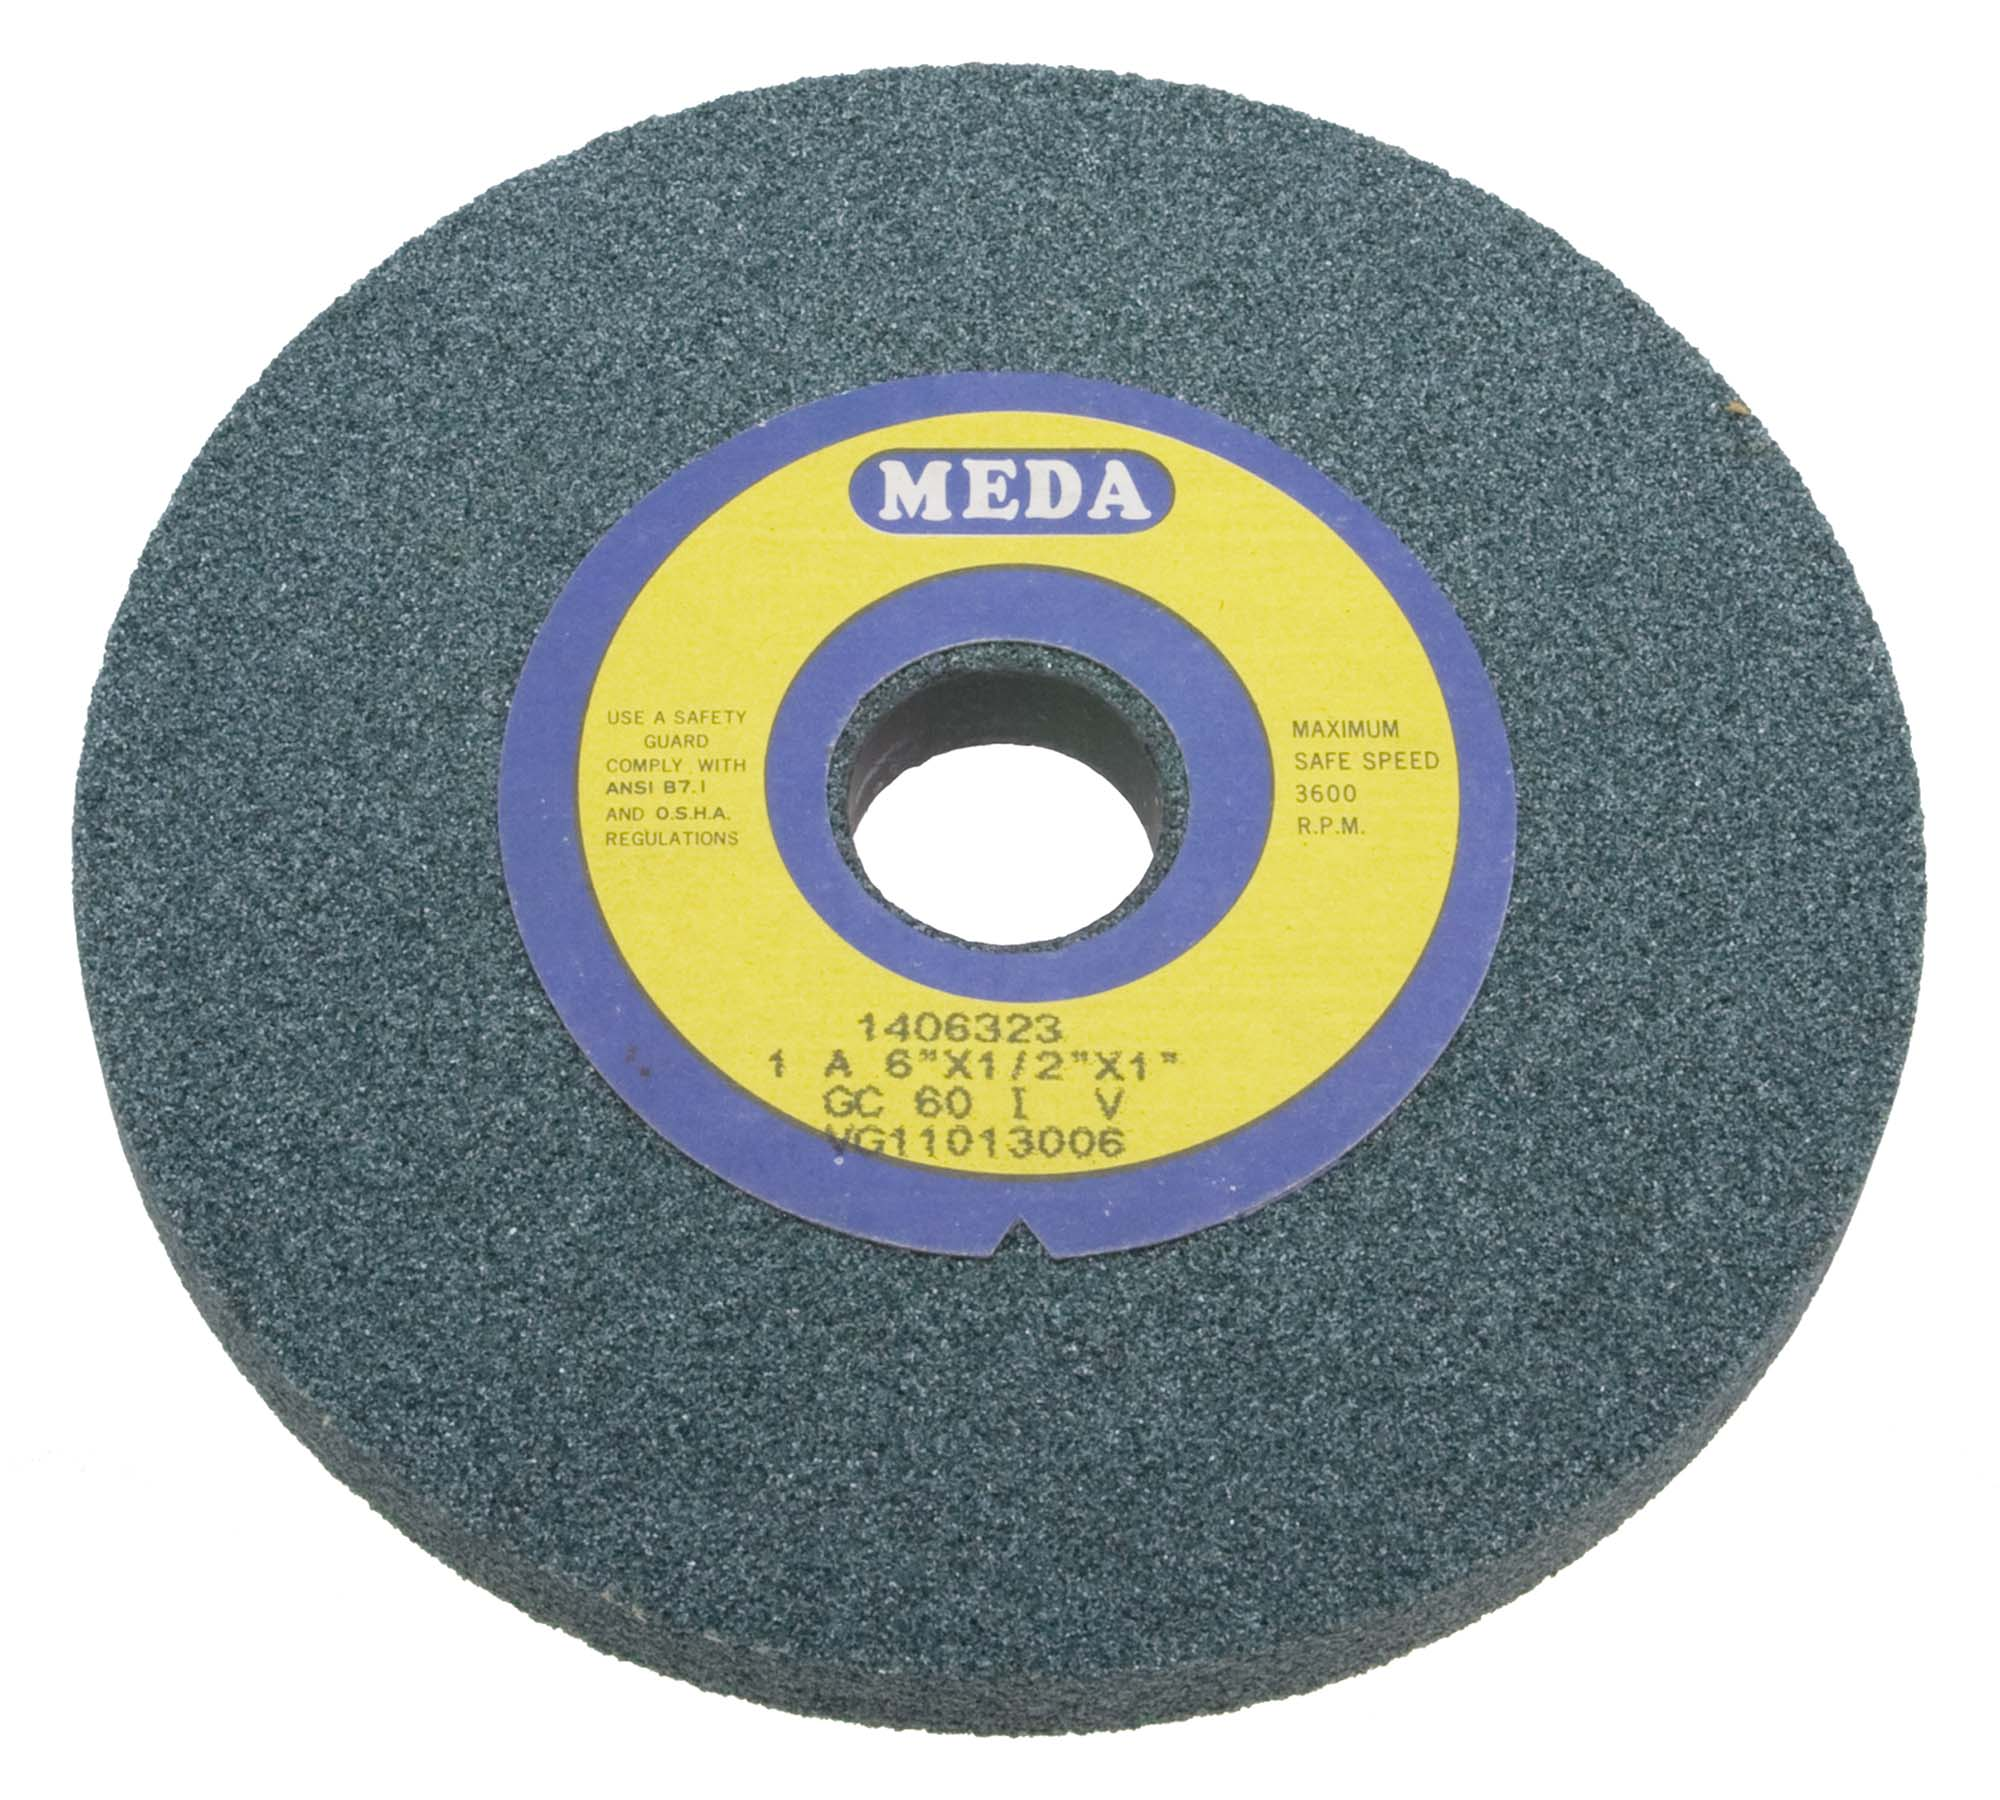 Meda 6 x 3/4 x 1 Coarse 60 Grit Green Wheel